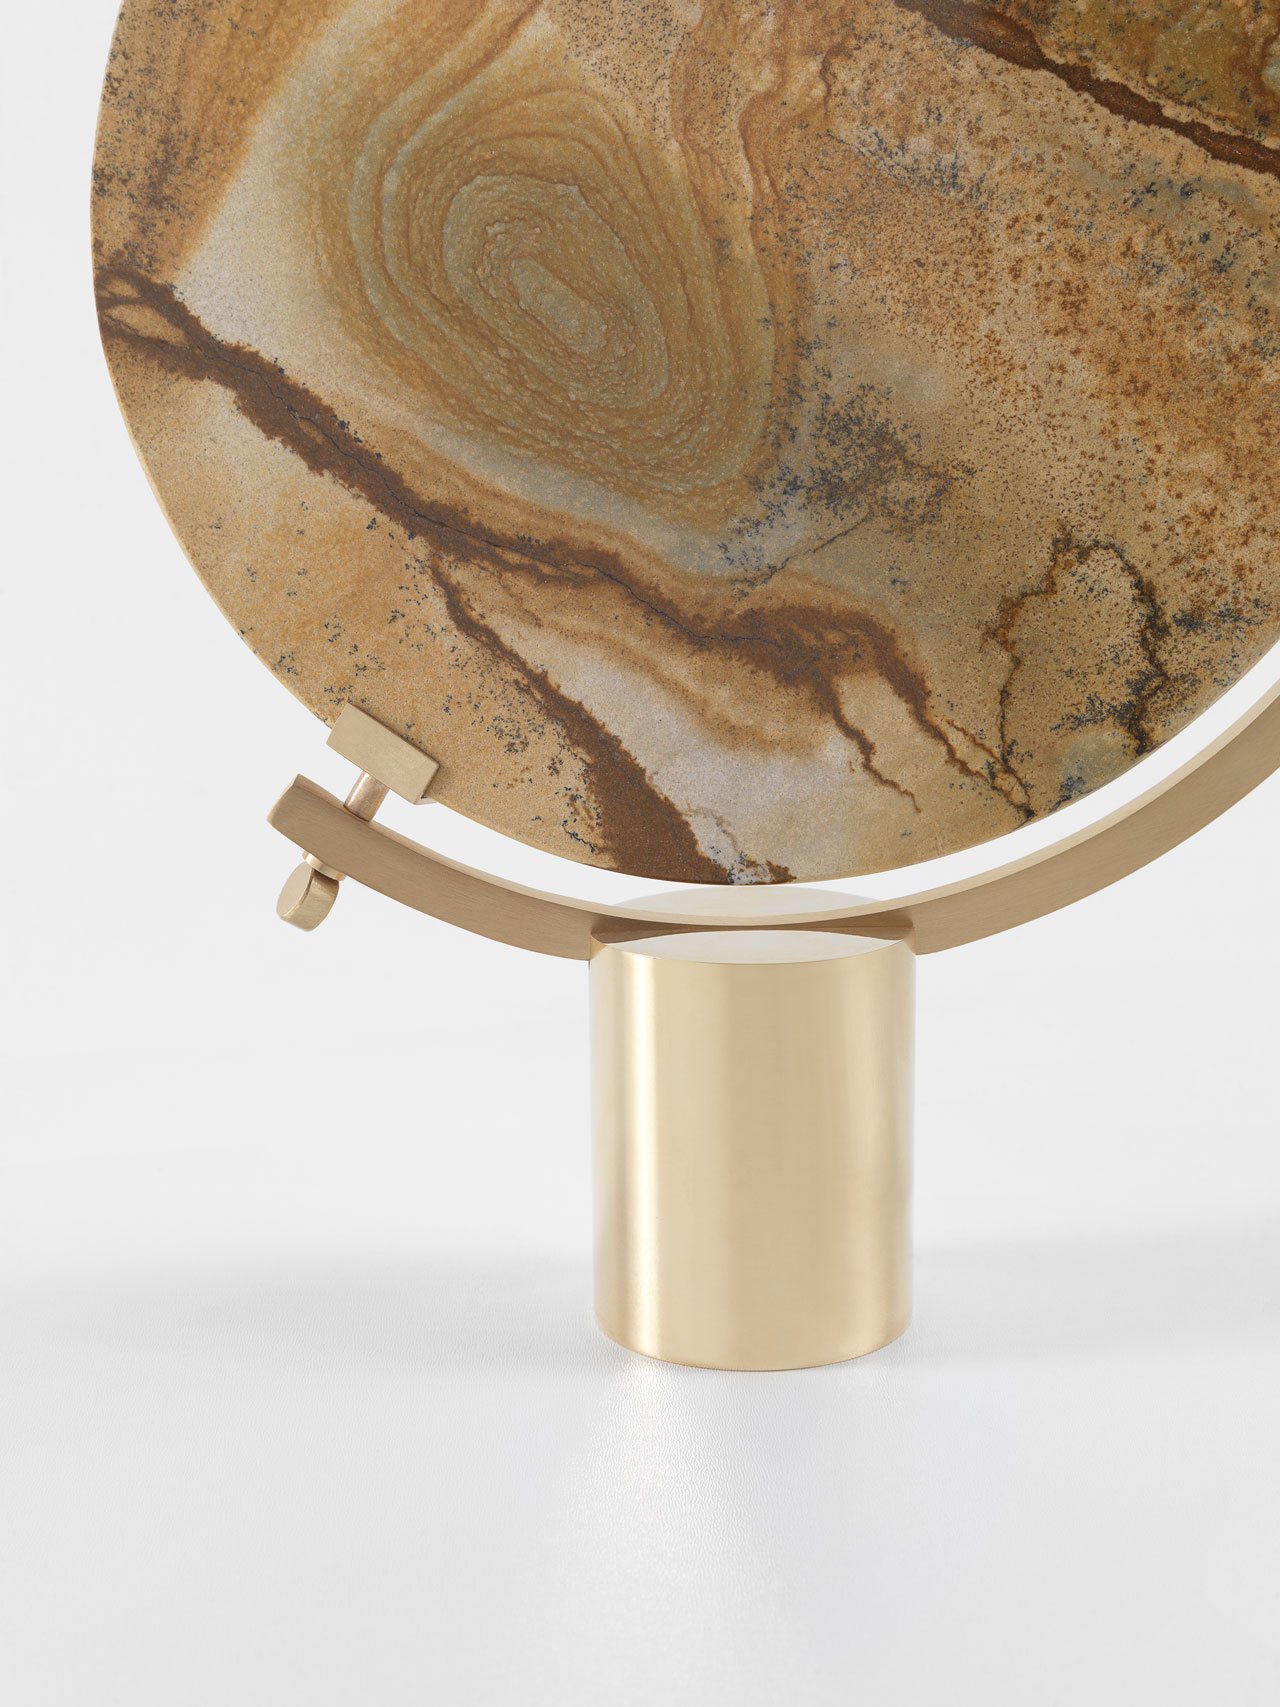 NAIA table mirror by CTRLZAK for JCP Universe.Materials: diverse marbles and super mirror steel with polished brass base and matte brass frame.Dimensions (H x W x D): 33cm x 26cm x 6cm.PhotobySilvio Macchi© JCP Universe.